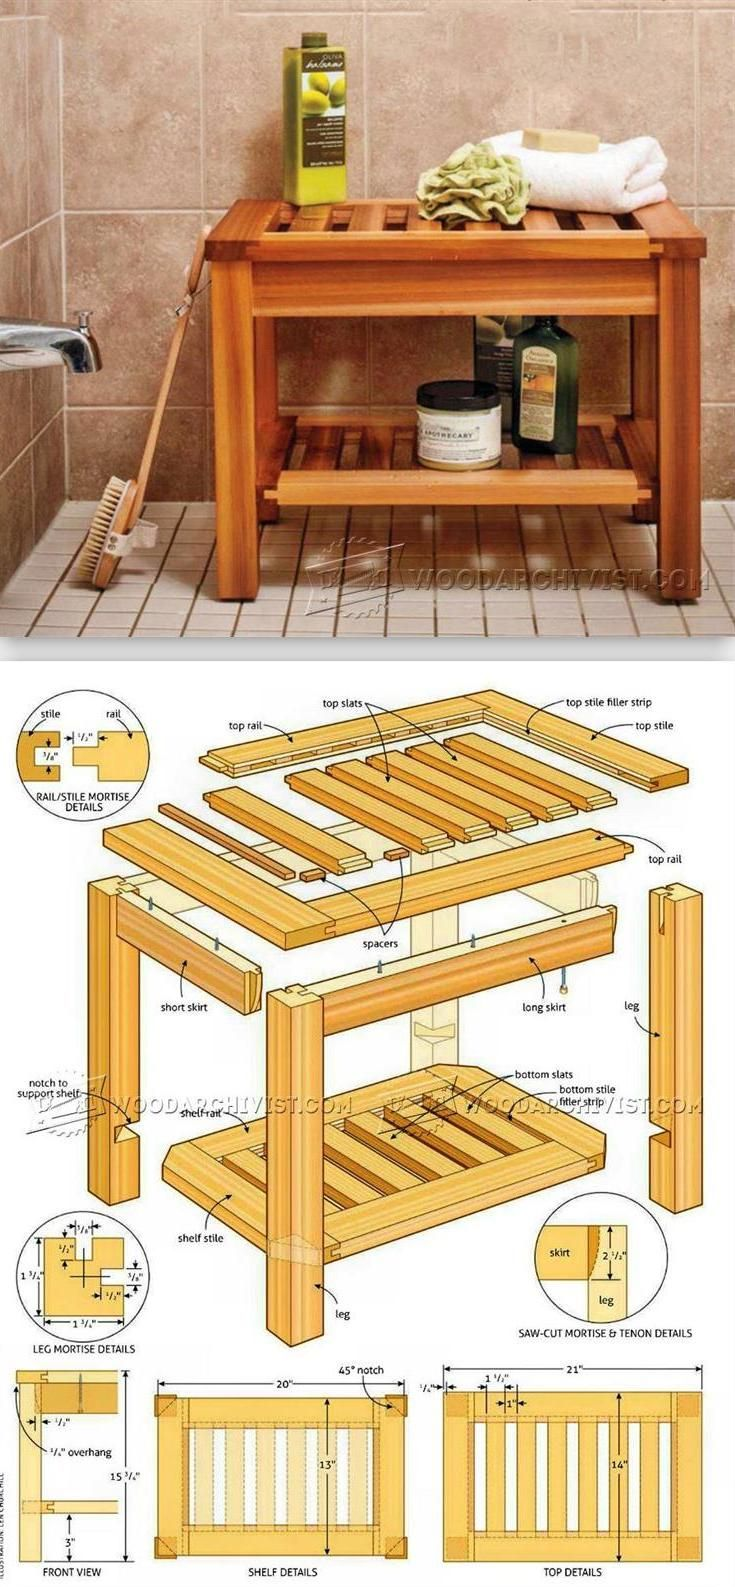 Shower Bench Plans - Furniture Plans and Projects   WoodArchivist.com